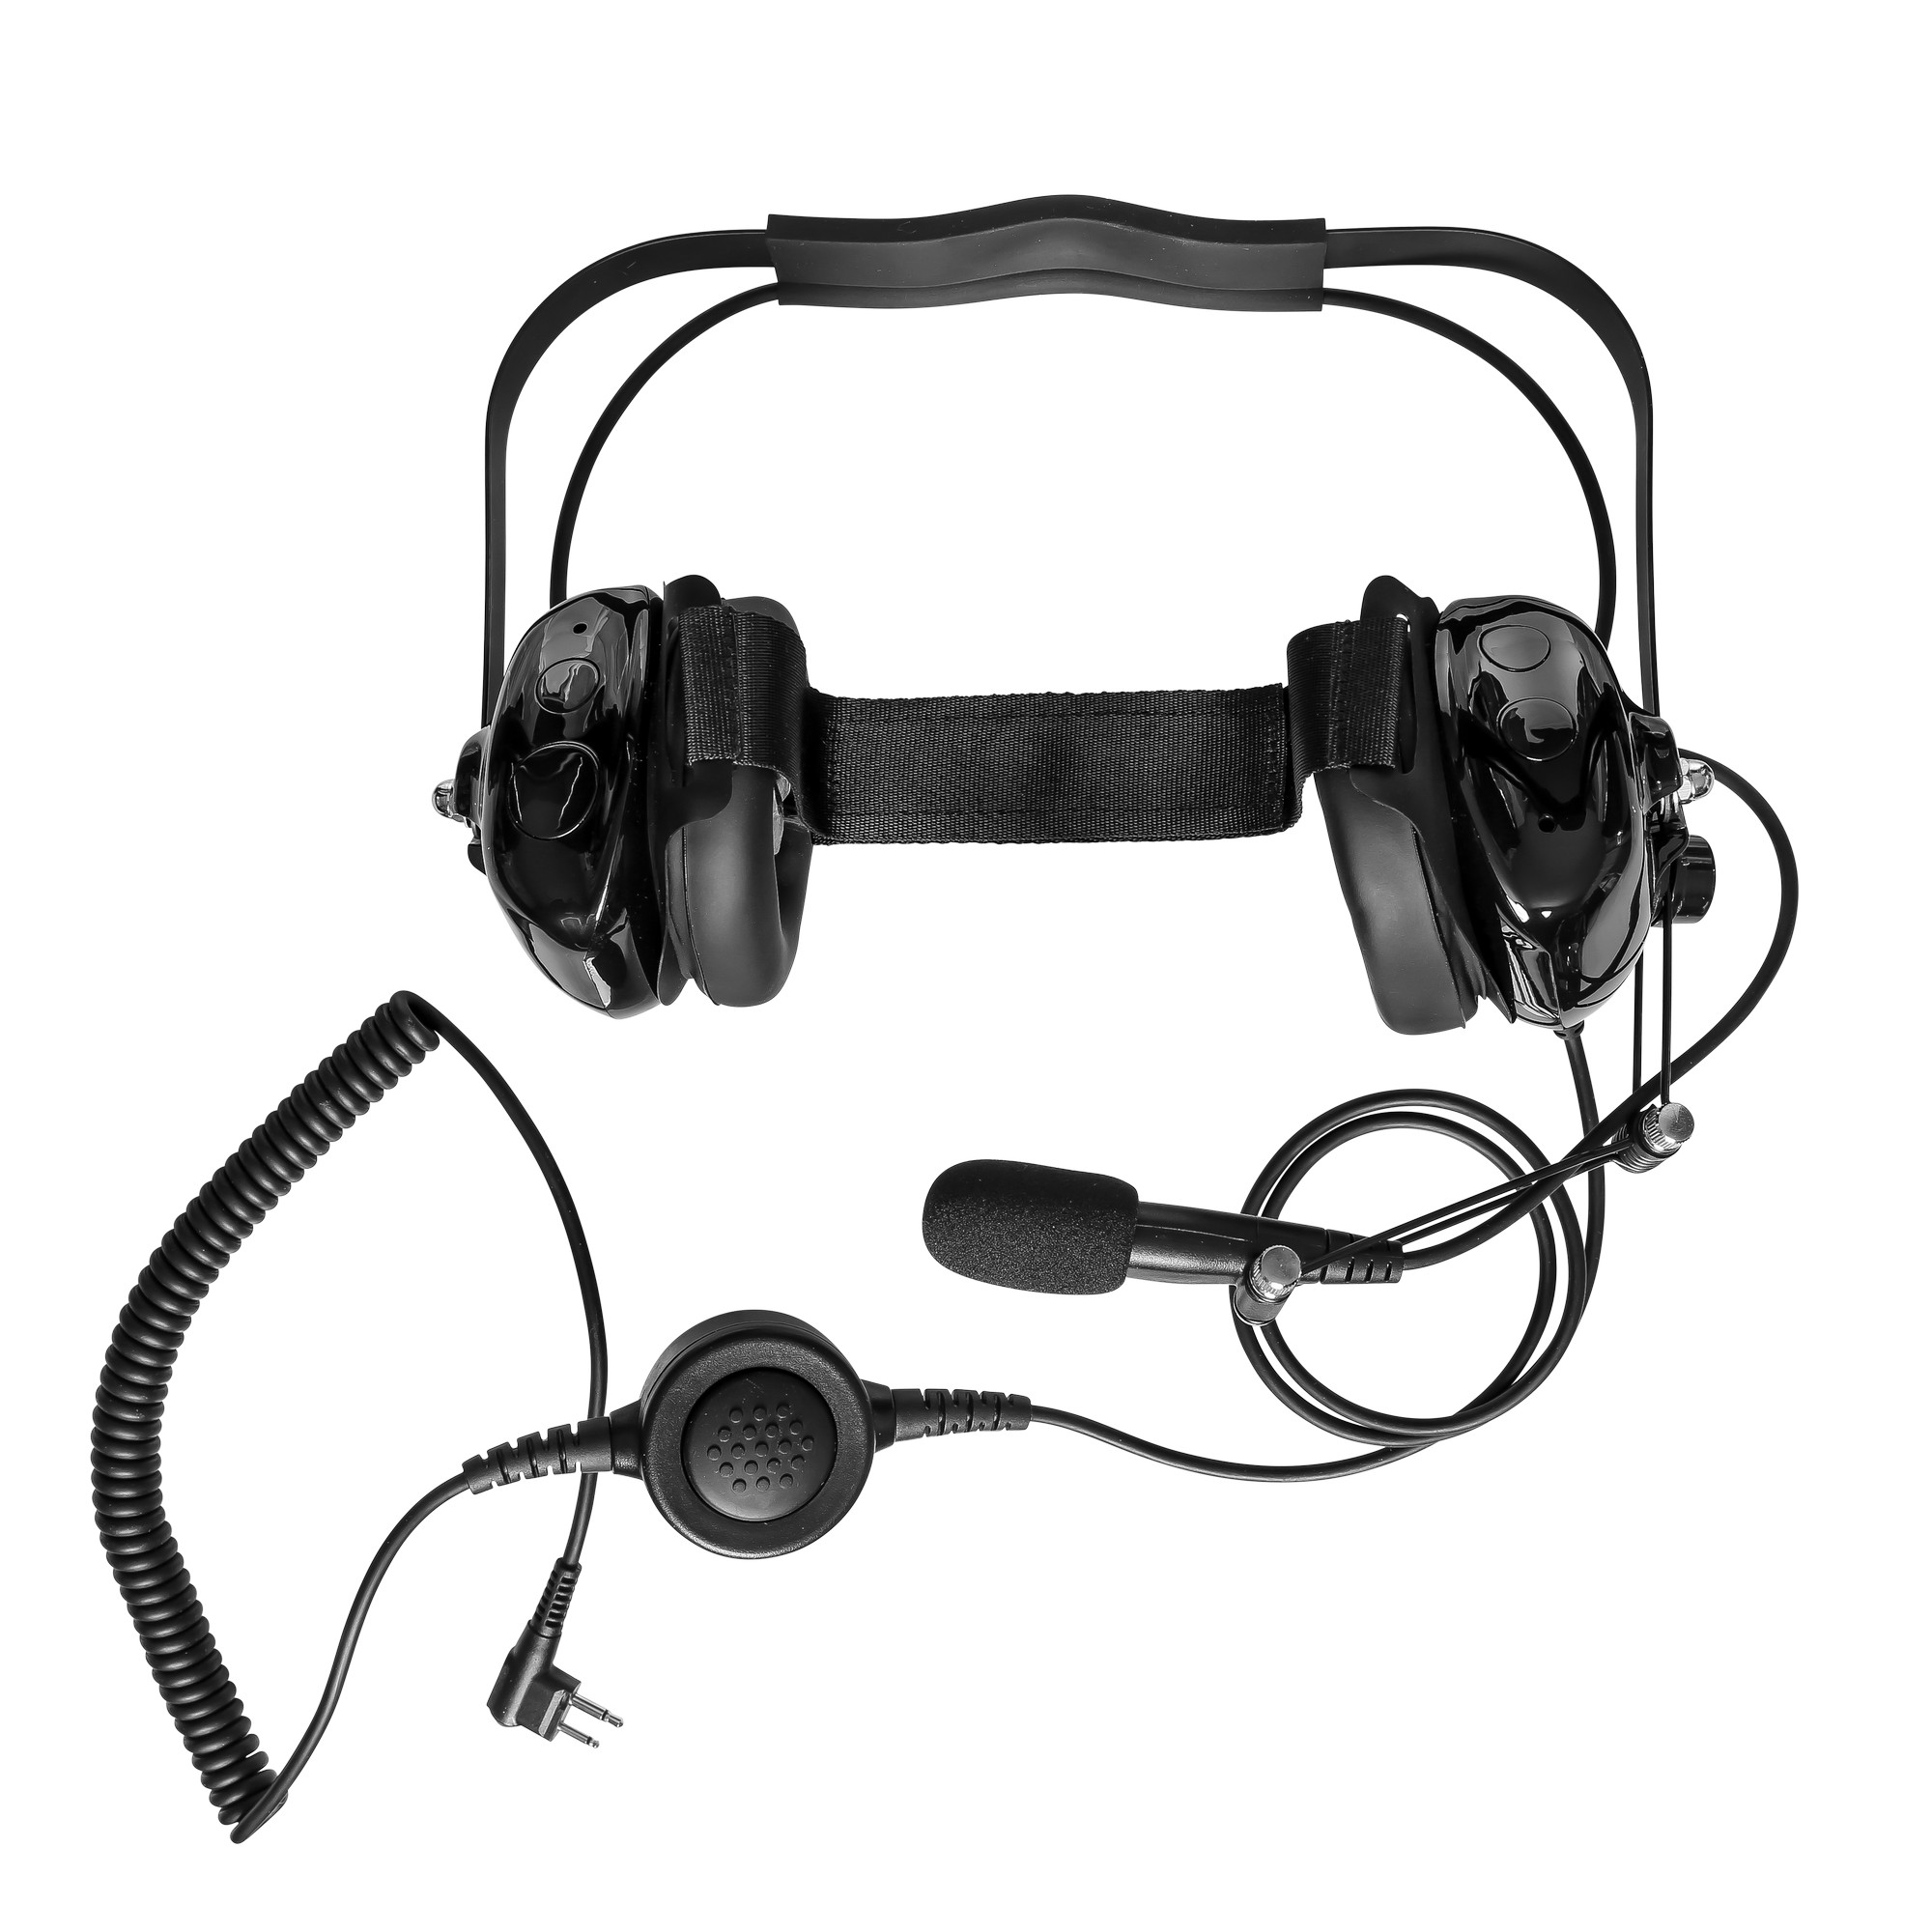 Maxtop AHDH0032-BK-M1 Two Way Radio Noise Cancelling Headset for Motorola CP200